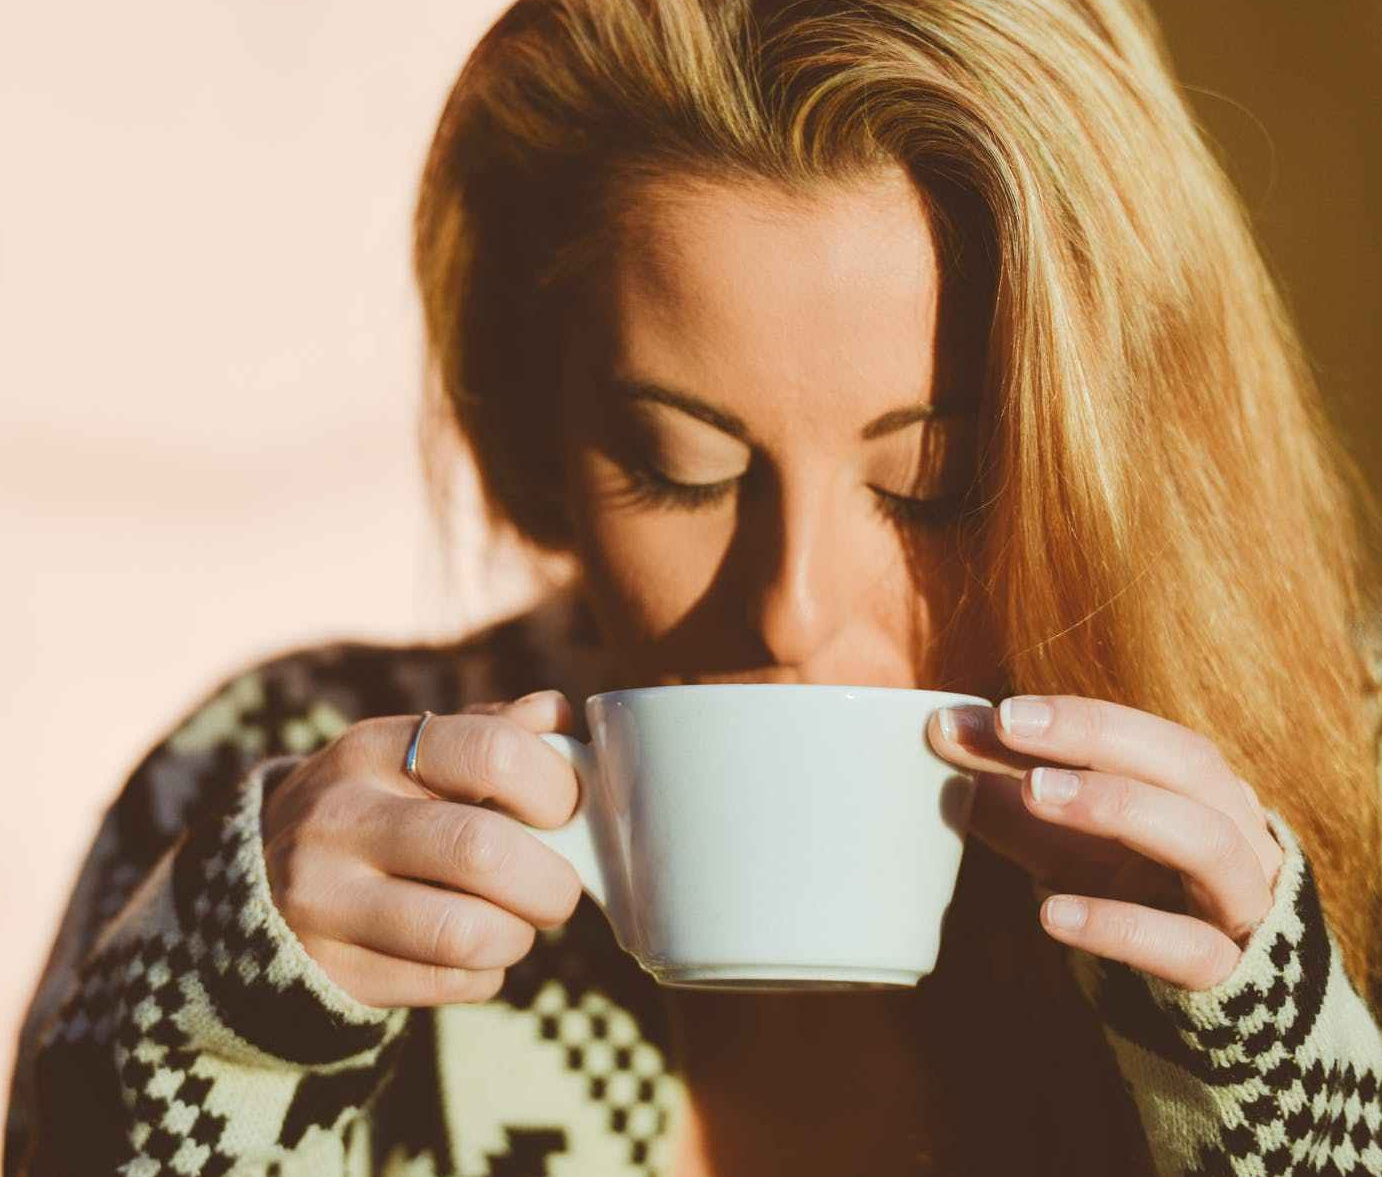 Dealing With Anxiety? Coffee Can Help